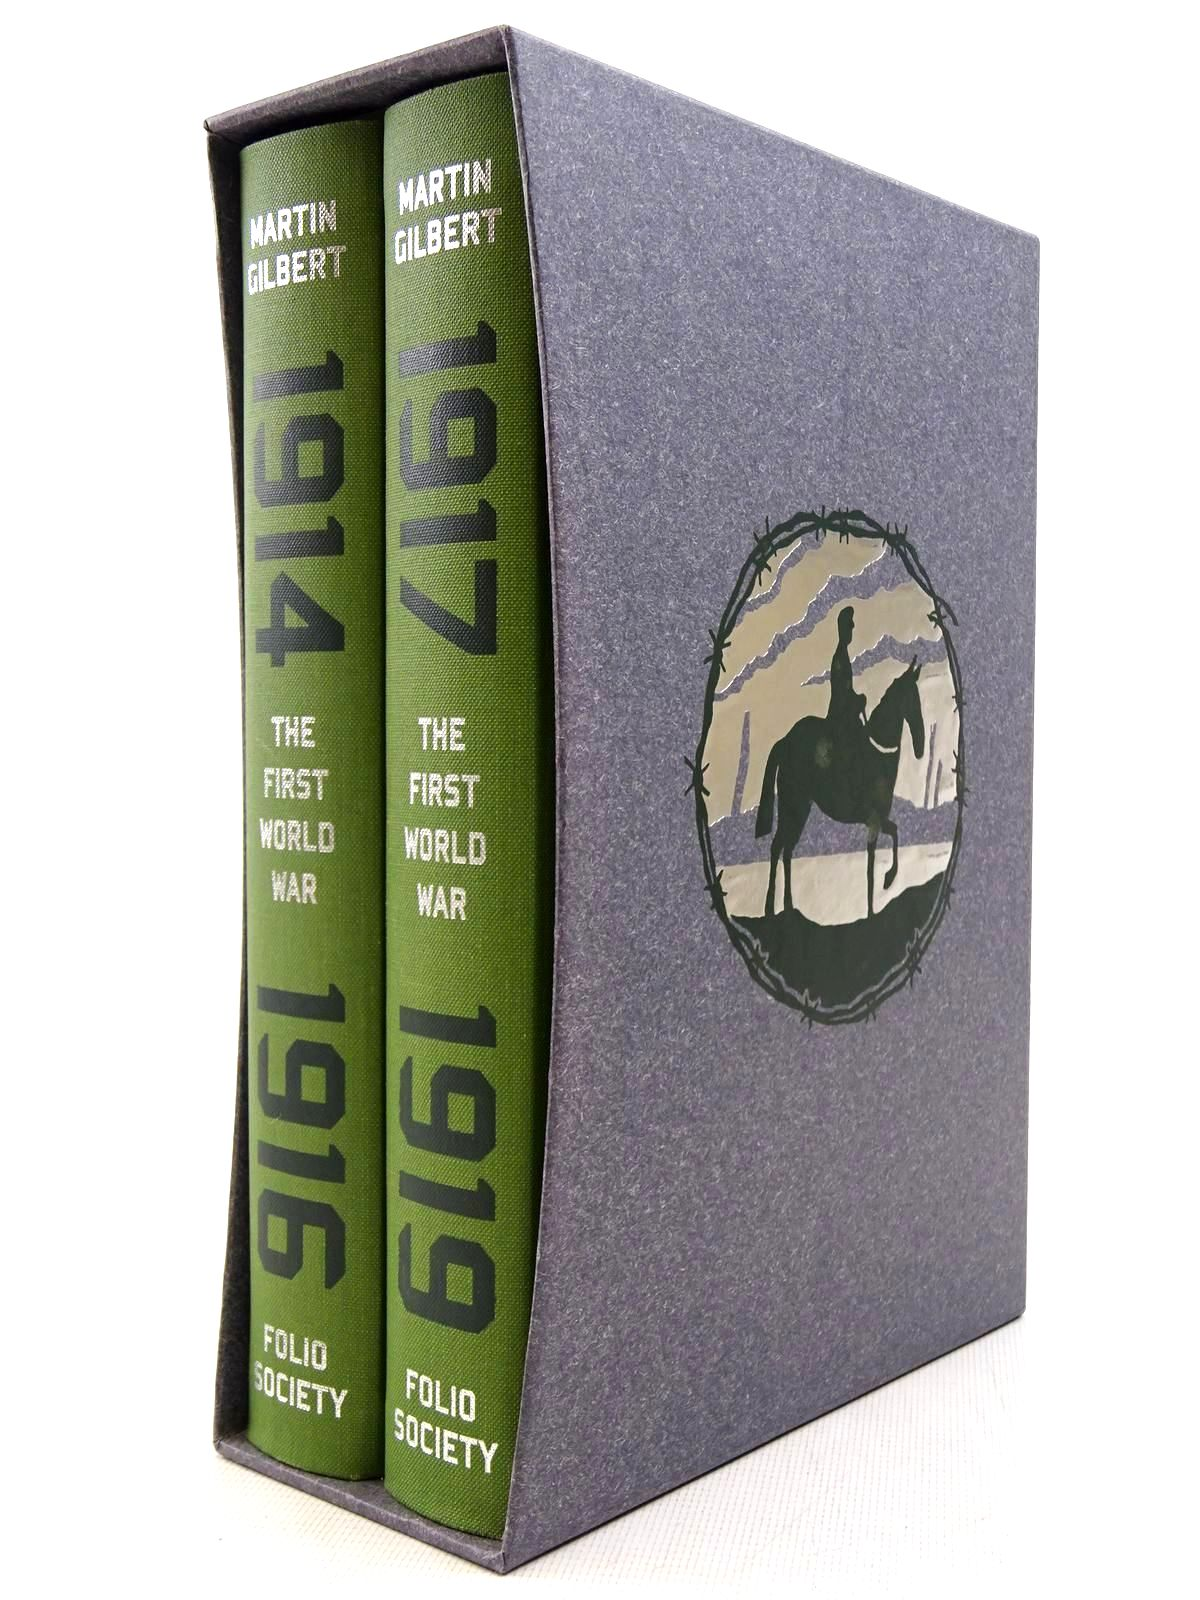 Photo of THE FIRST WORLD WAR (2 VOLUMES) written by Gilbert, Martin published by Folio Society (STOCK CODE: 2128815)  for sale by Stella & Rose's Books